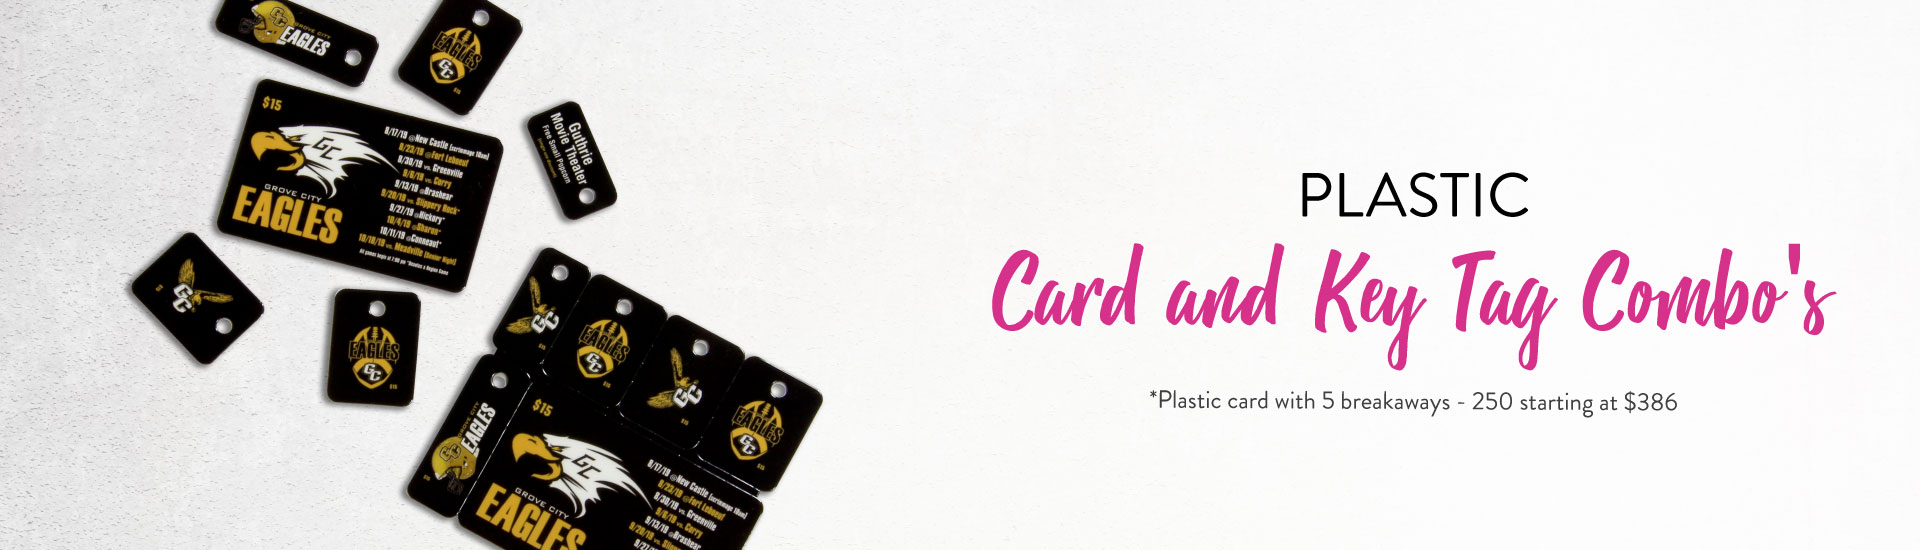 Plastic Cards and Key Combo Banner